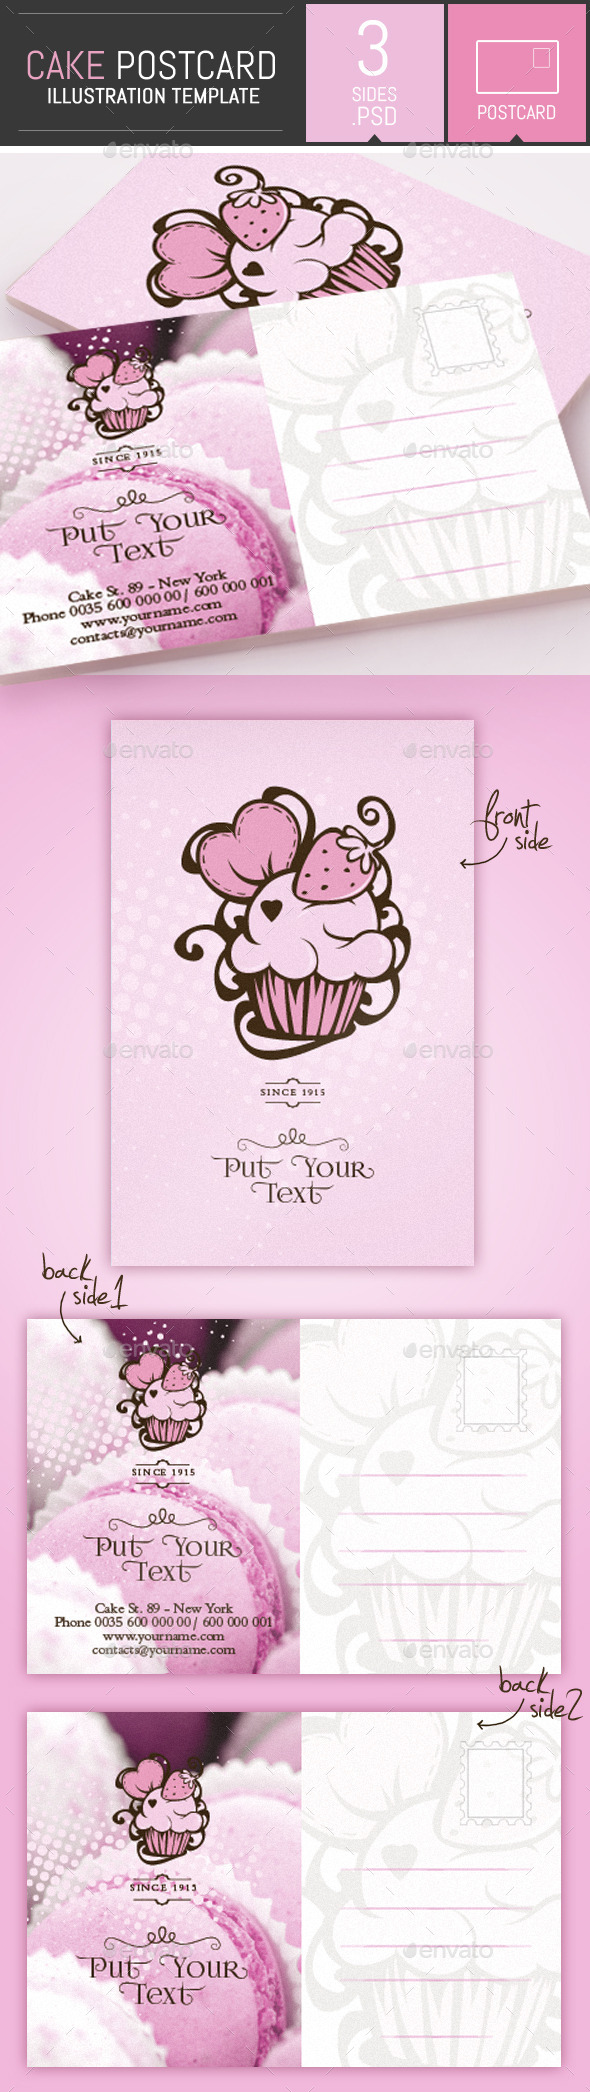 GraphicRiver Cake and Cupcake Business Postcard Template 9342533